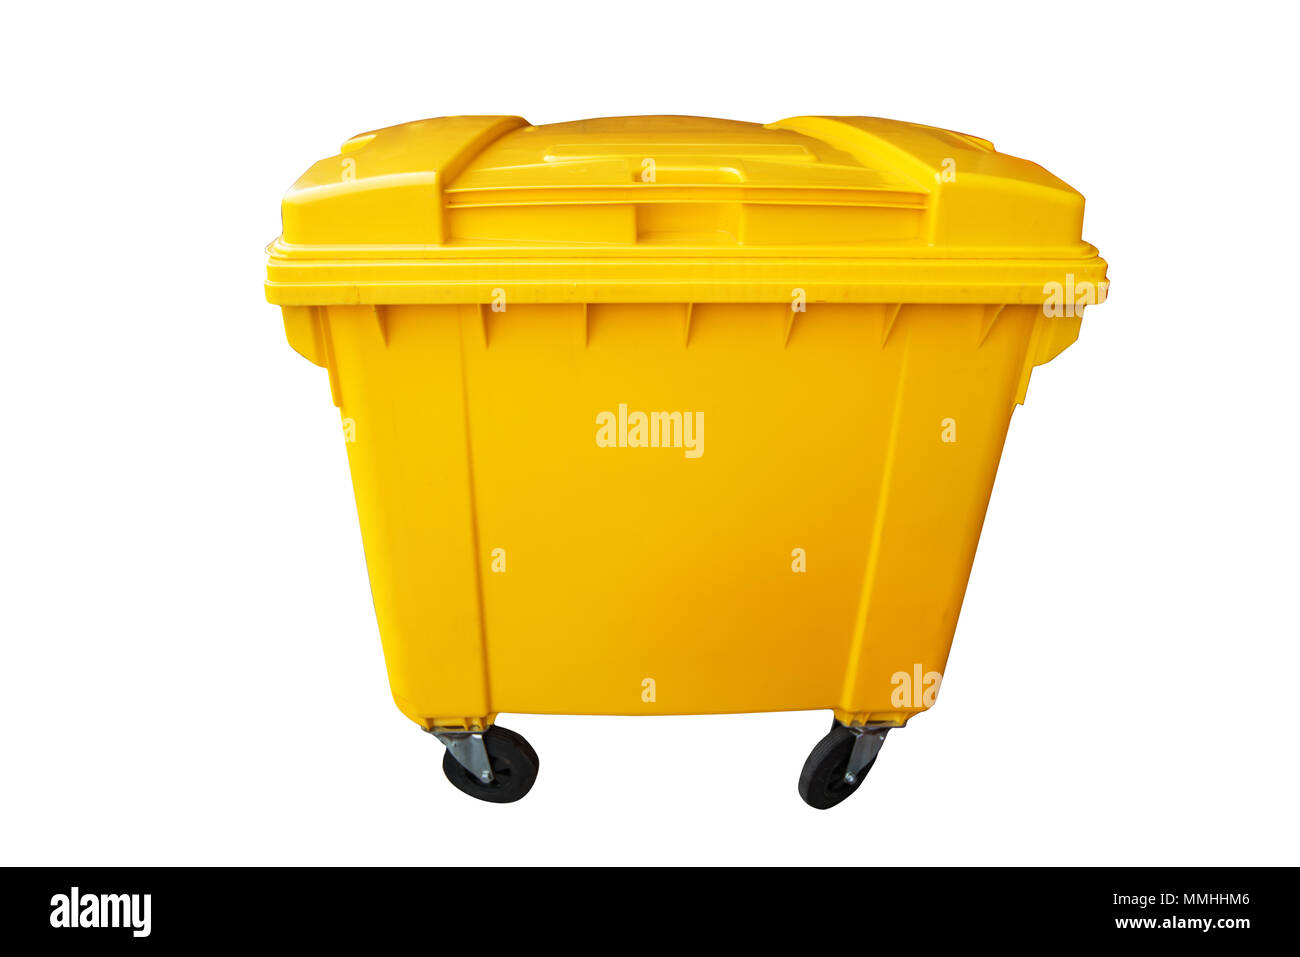 Public yellow trash can, recycle or rubbish bin isolated on white, clipping path - Stock Image